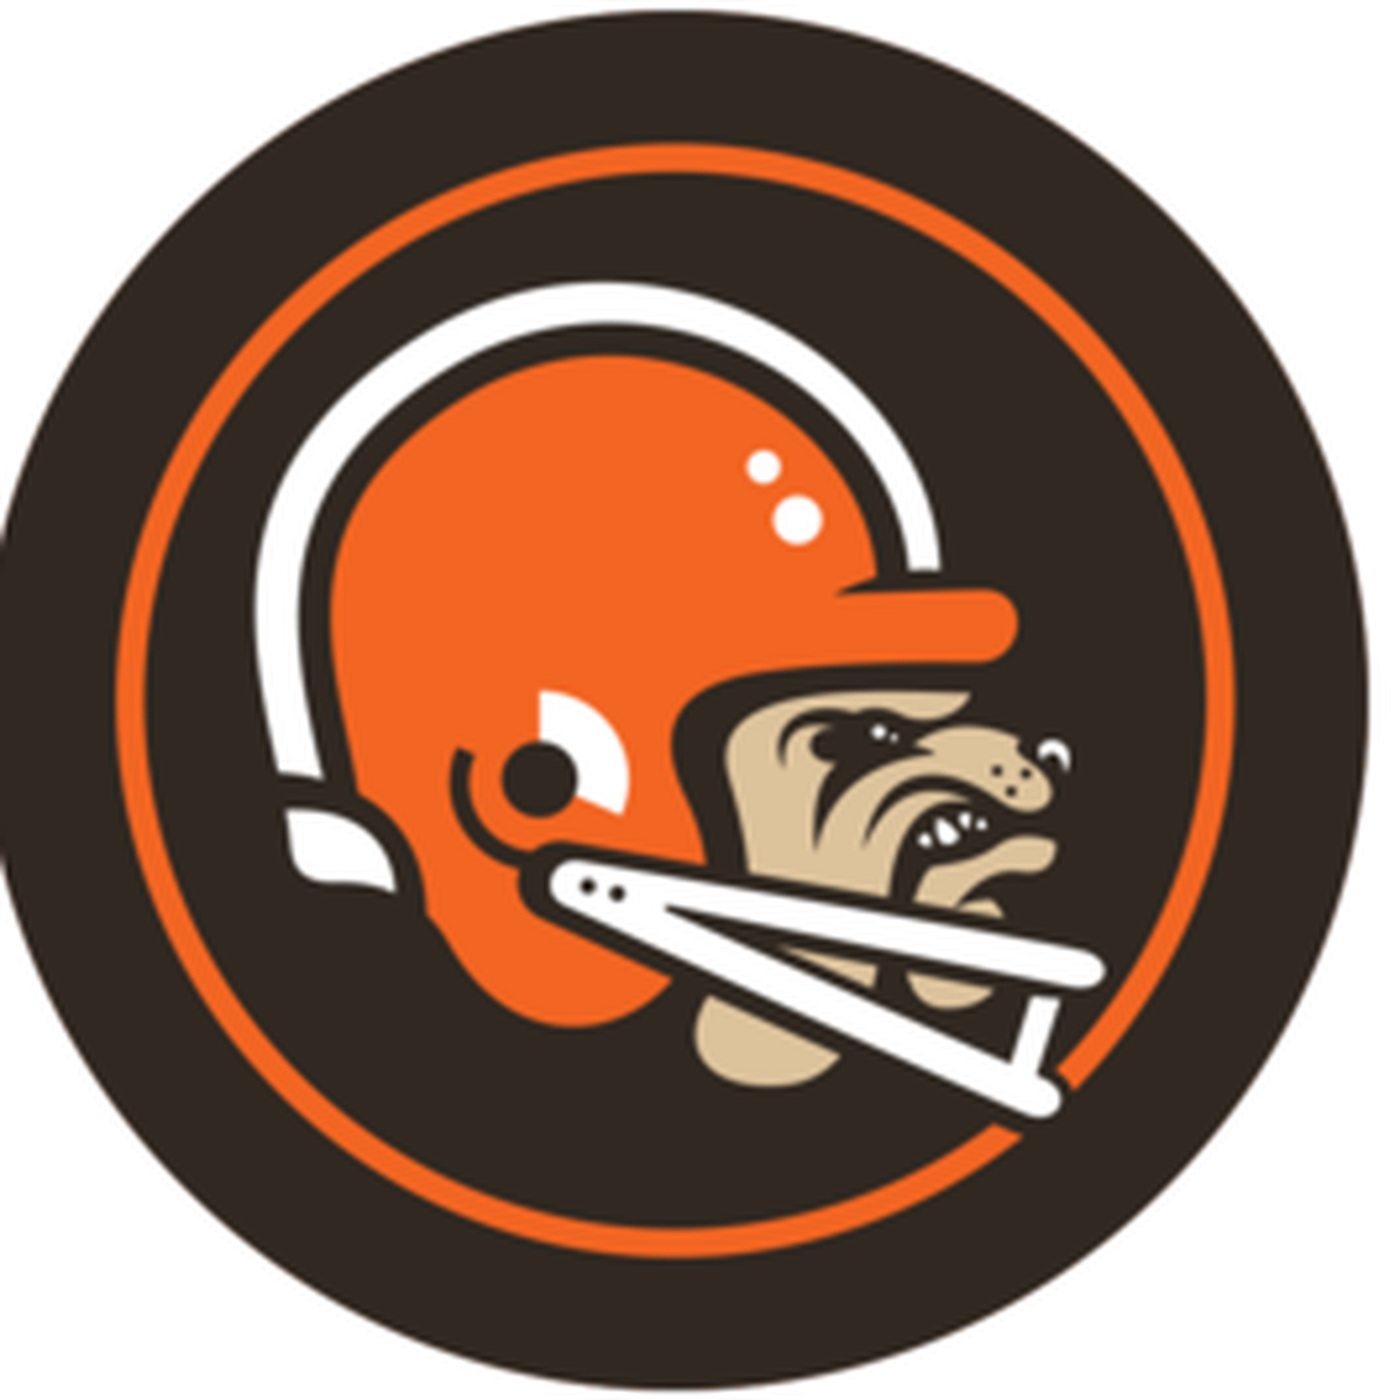 Browns football clipart royalty free Cleveland Browns Draft Success #4: Daylon McCutcheon - Dawgs By Nature royalty free